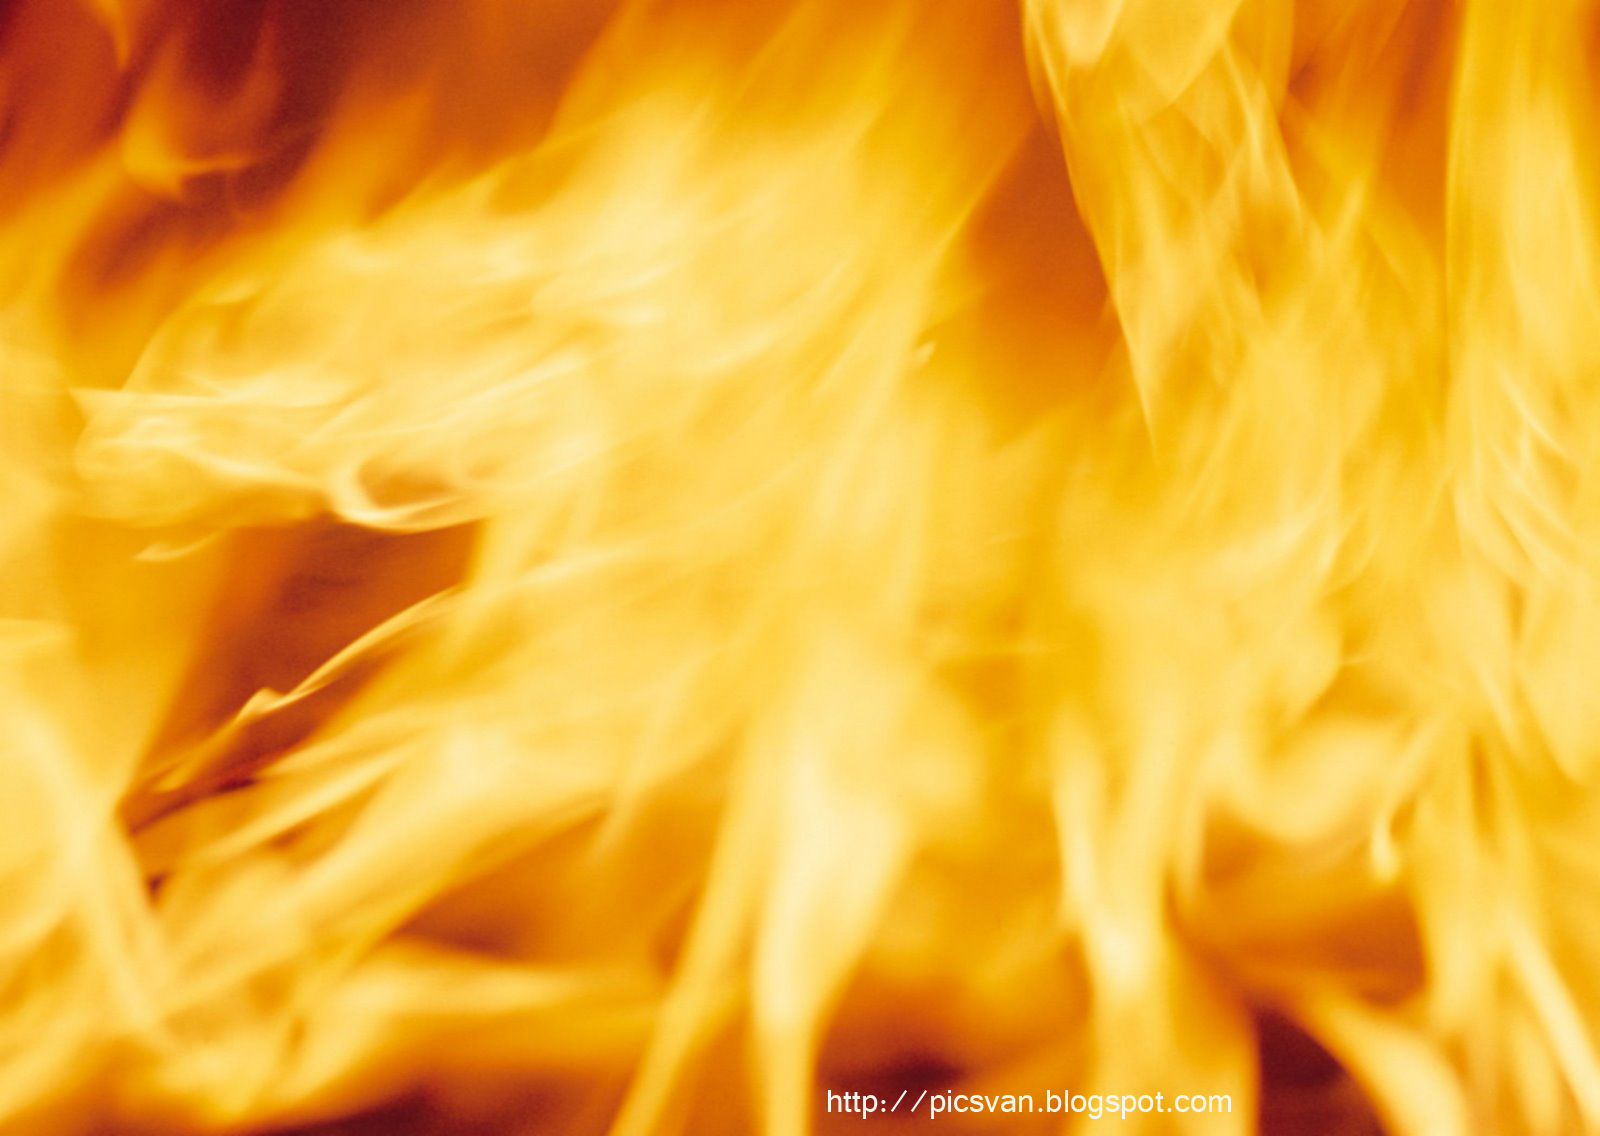 Kelly Fire Wallpaper Free: FREE-PHOTOSHOP BACKGROUNDS-HIGH-RESOLUTION WALLPAPERS